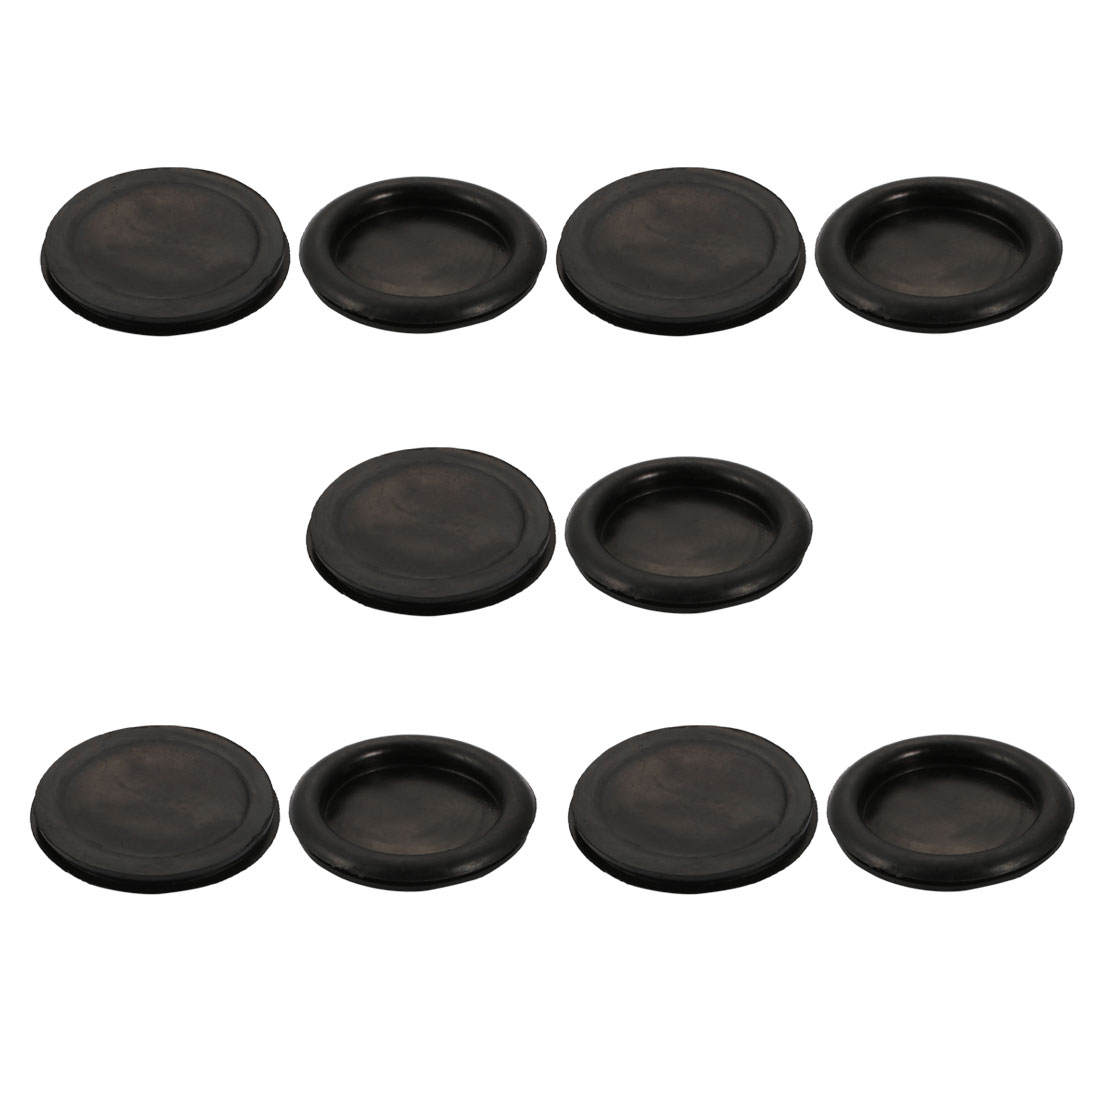 10pcs Wire Protective Grommets Black Rubber 80mm Dia Single Side Grommets